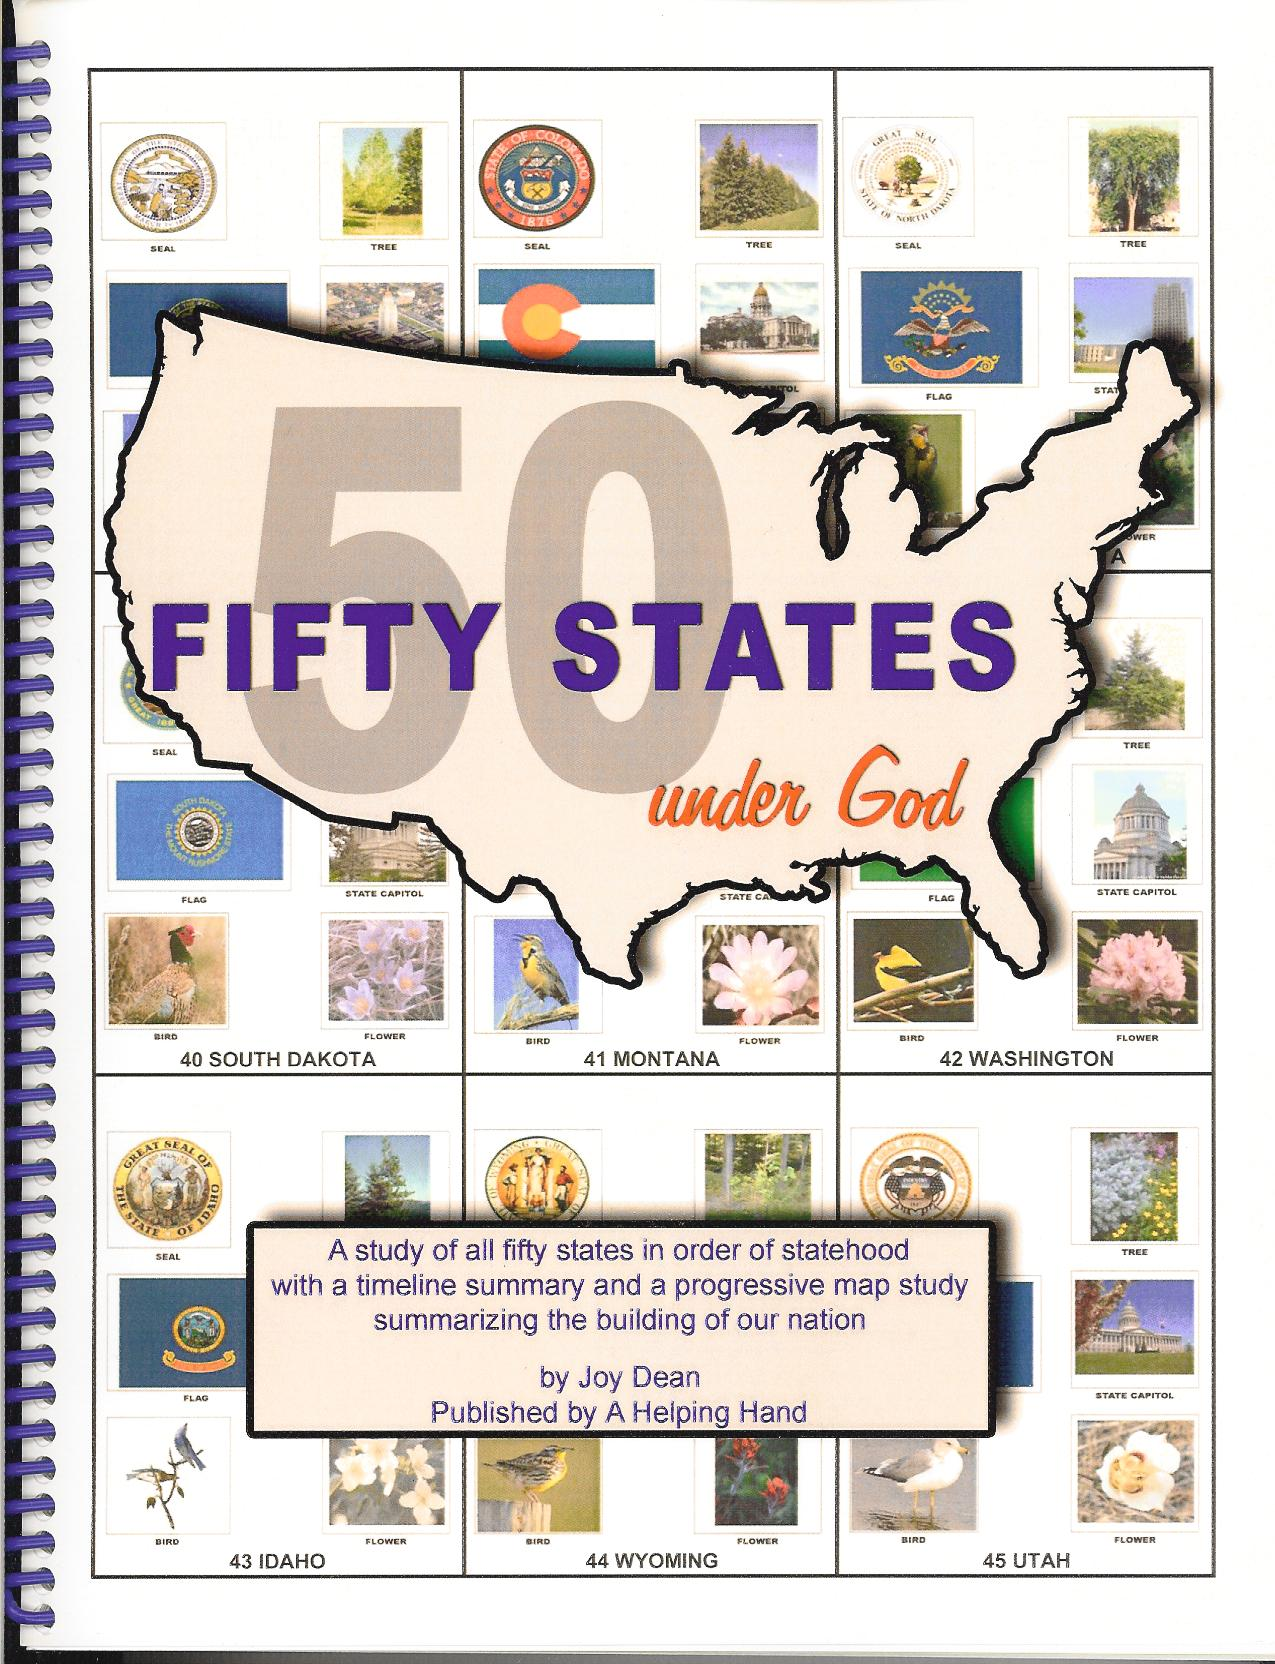 Teaching the 50 states has never been so fun. Here's one of our favorite 50 State homeschool curriculum. Check out the giveaway! #teach50statesfromachristian ##teach50statesfor kids #teach50states #teach50statesactivities